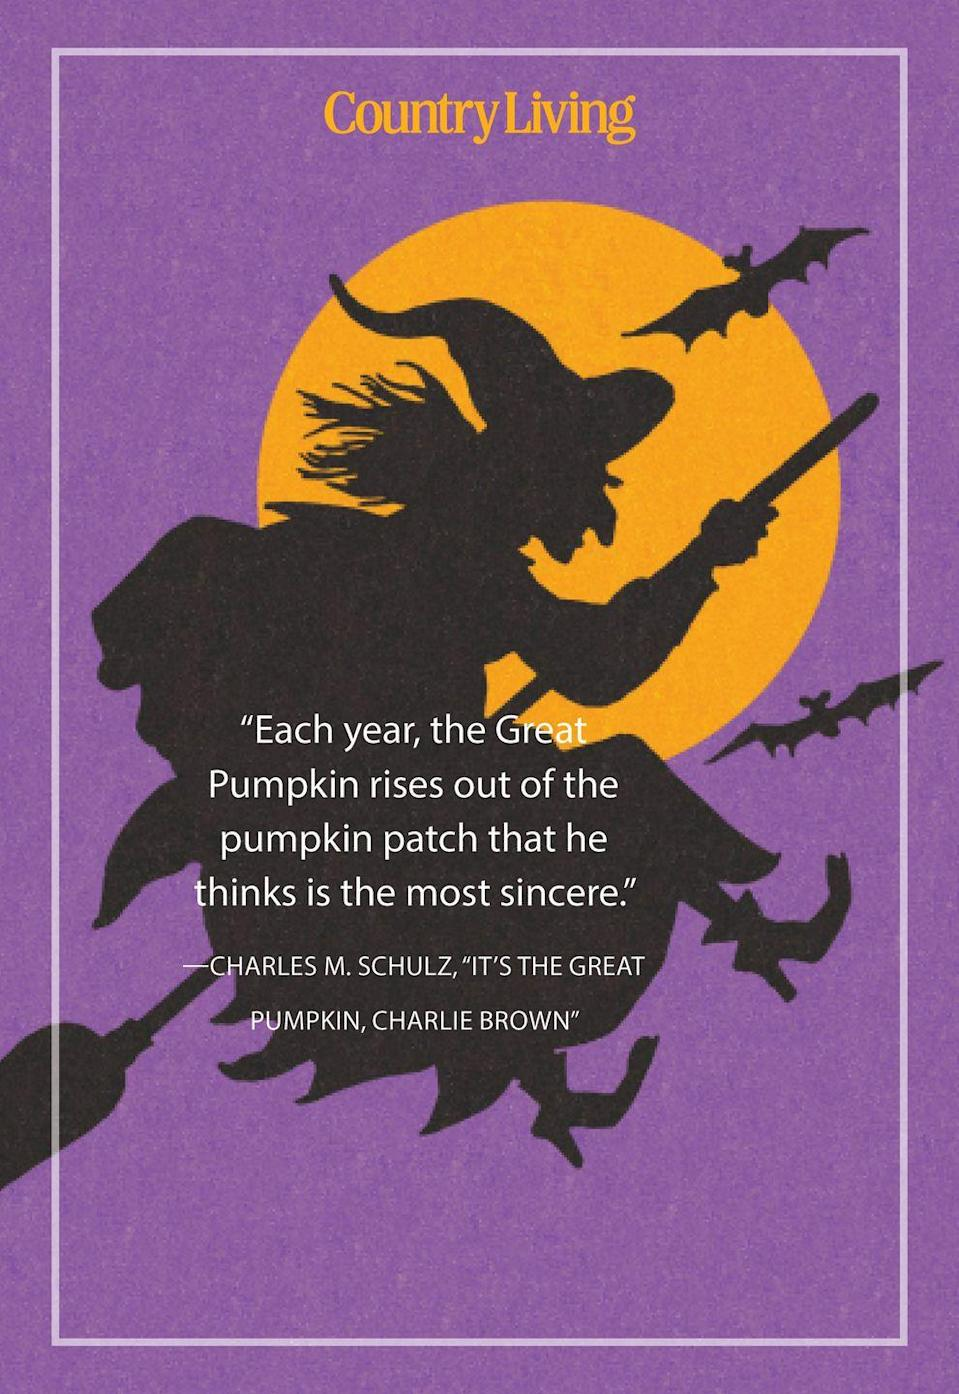 """<p>""""Each year, the Great Pumpkin rises out of the pumpkin patch that he thinks is the most sincere.""""</p>"""